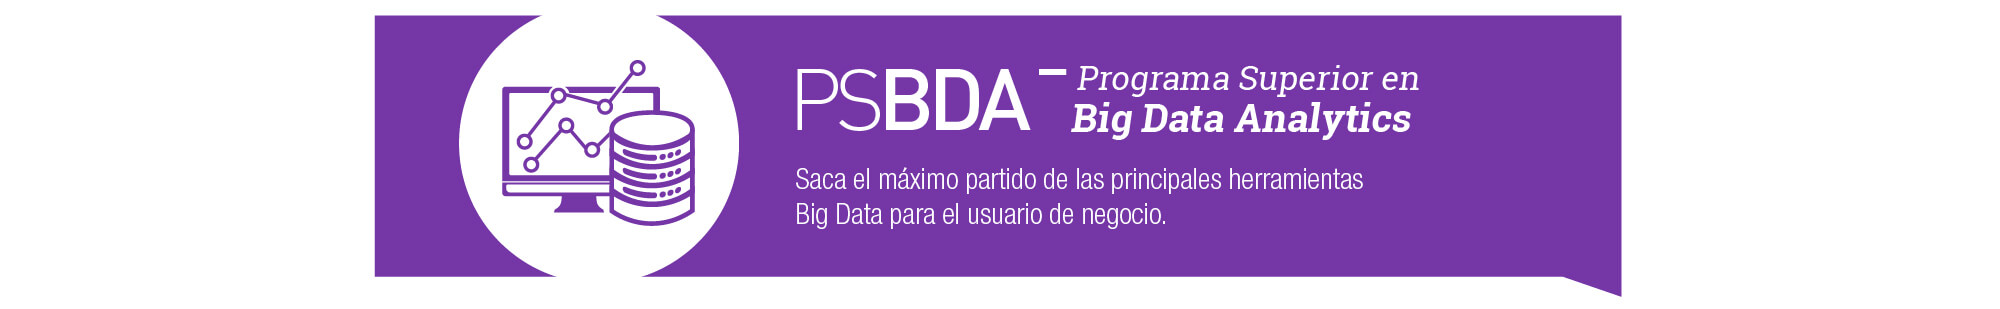 programa_superior_bid_data_analytics